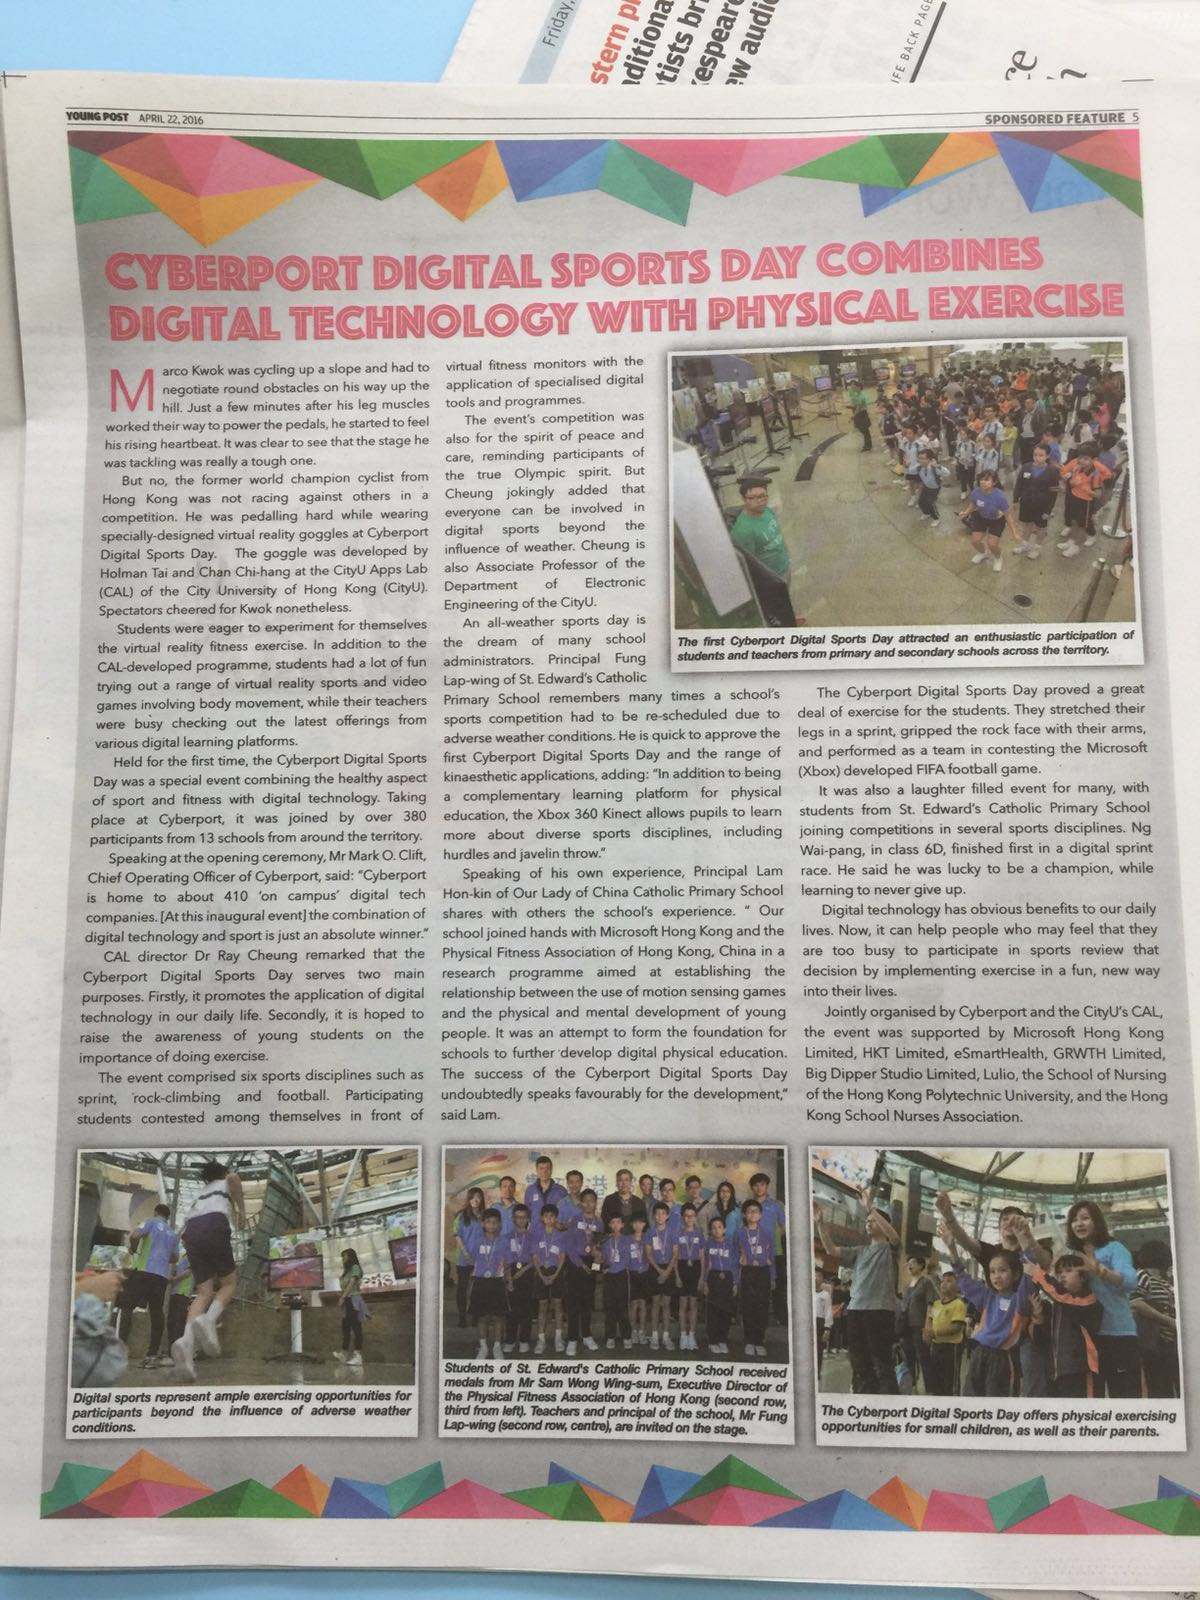 Cyberport Digital Sports Day Combines Digital Technology With Physical Exercise